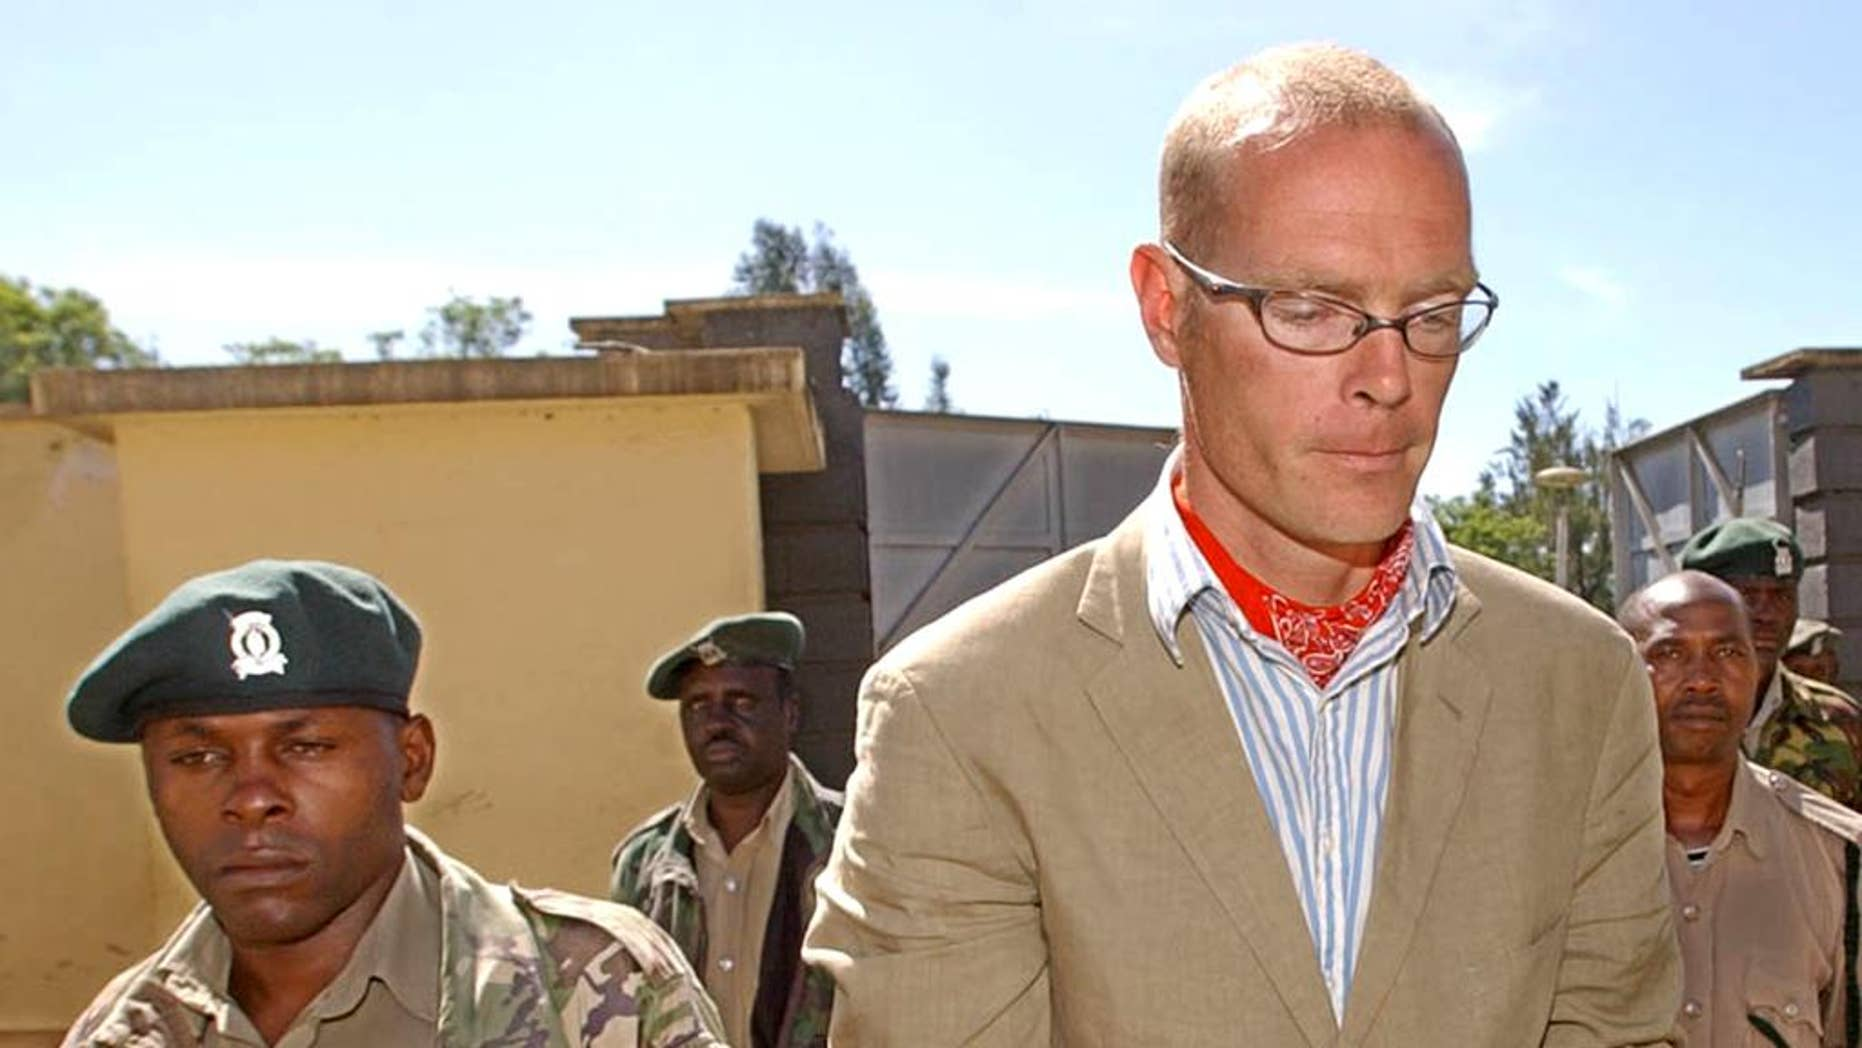 FILE---In this file photo of May 18, 2005, Thomas Patrick Gilbert Cholmondeley, right, grandson of the late Lord Delamare, is escorted to the Nakuru Court in Kenya. Cholmondeley, a descendant of British aristocrats who twice had been accused of murdering locals has died after cardiac arrest, a Kenya hospital official said Wednesday Aug. 17, 2016. (AP Photo/Sayyid Azim-file)